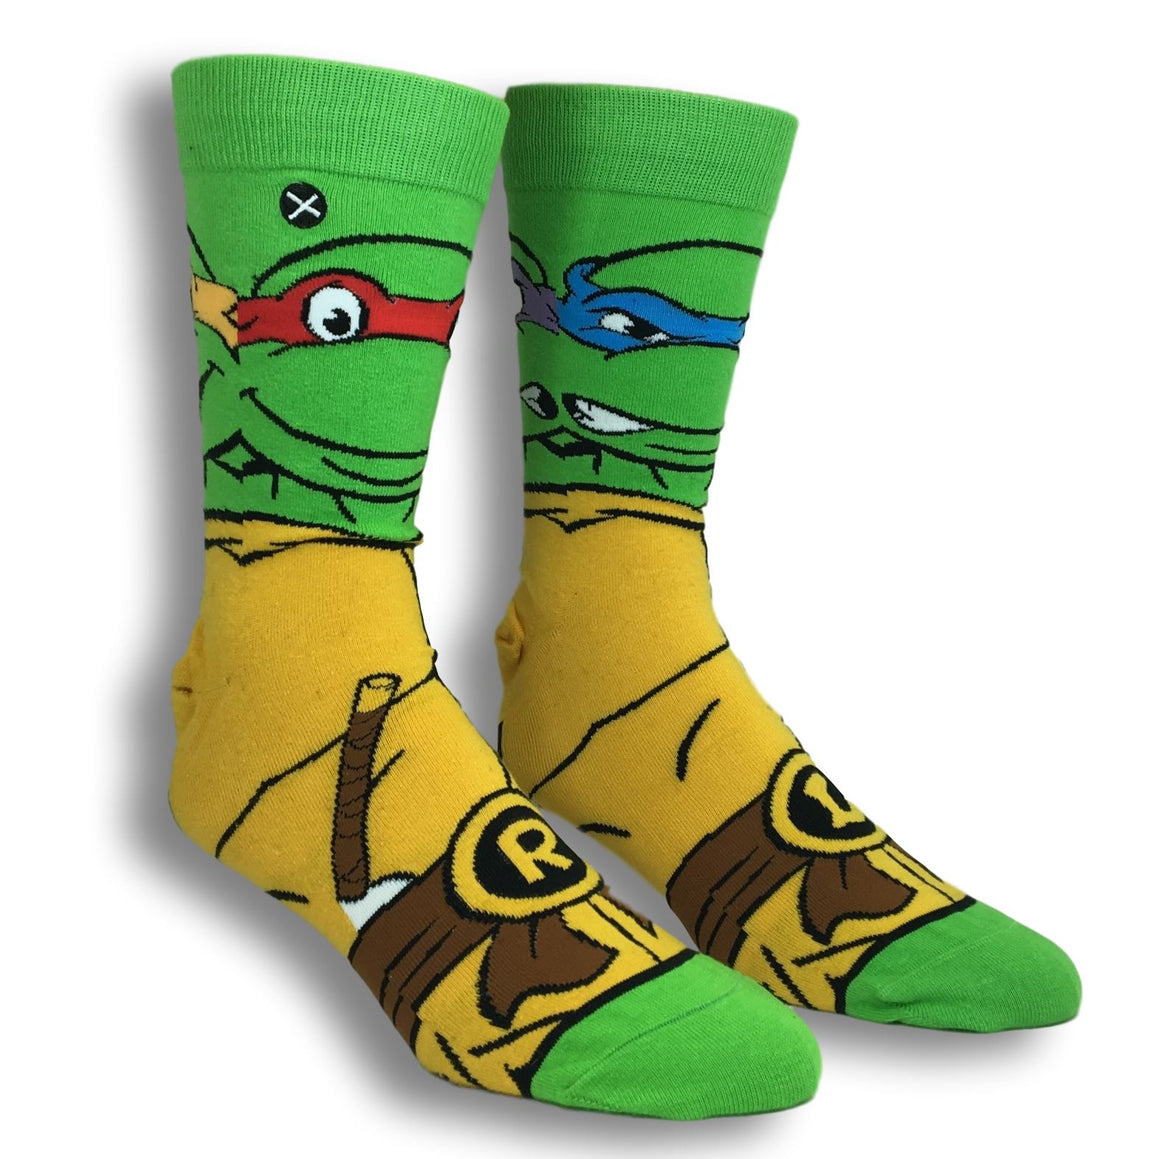 Socks - TMNT Ninja Turtles 360 Socks